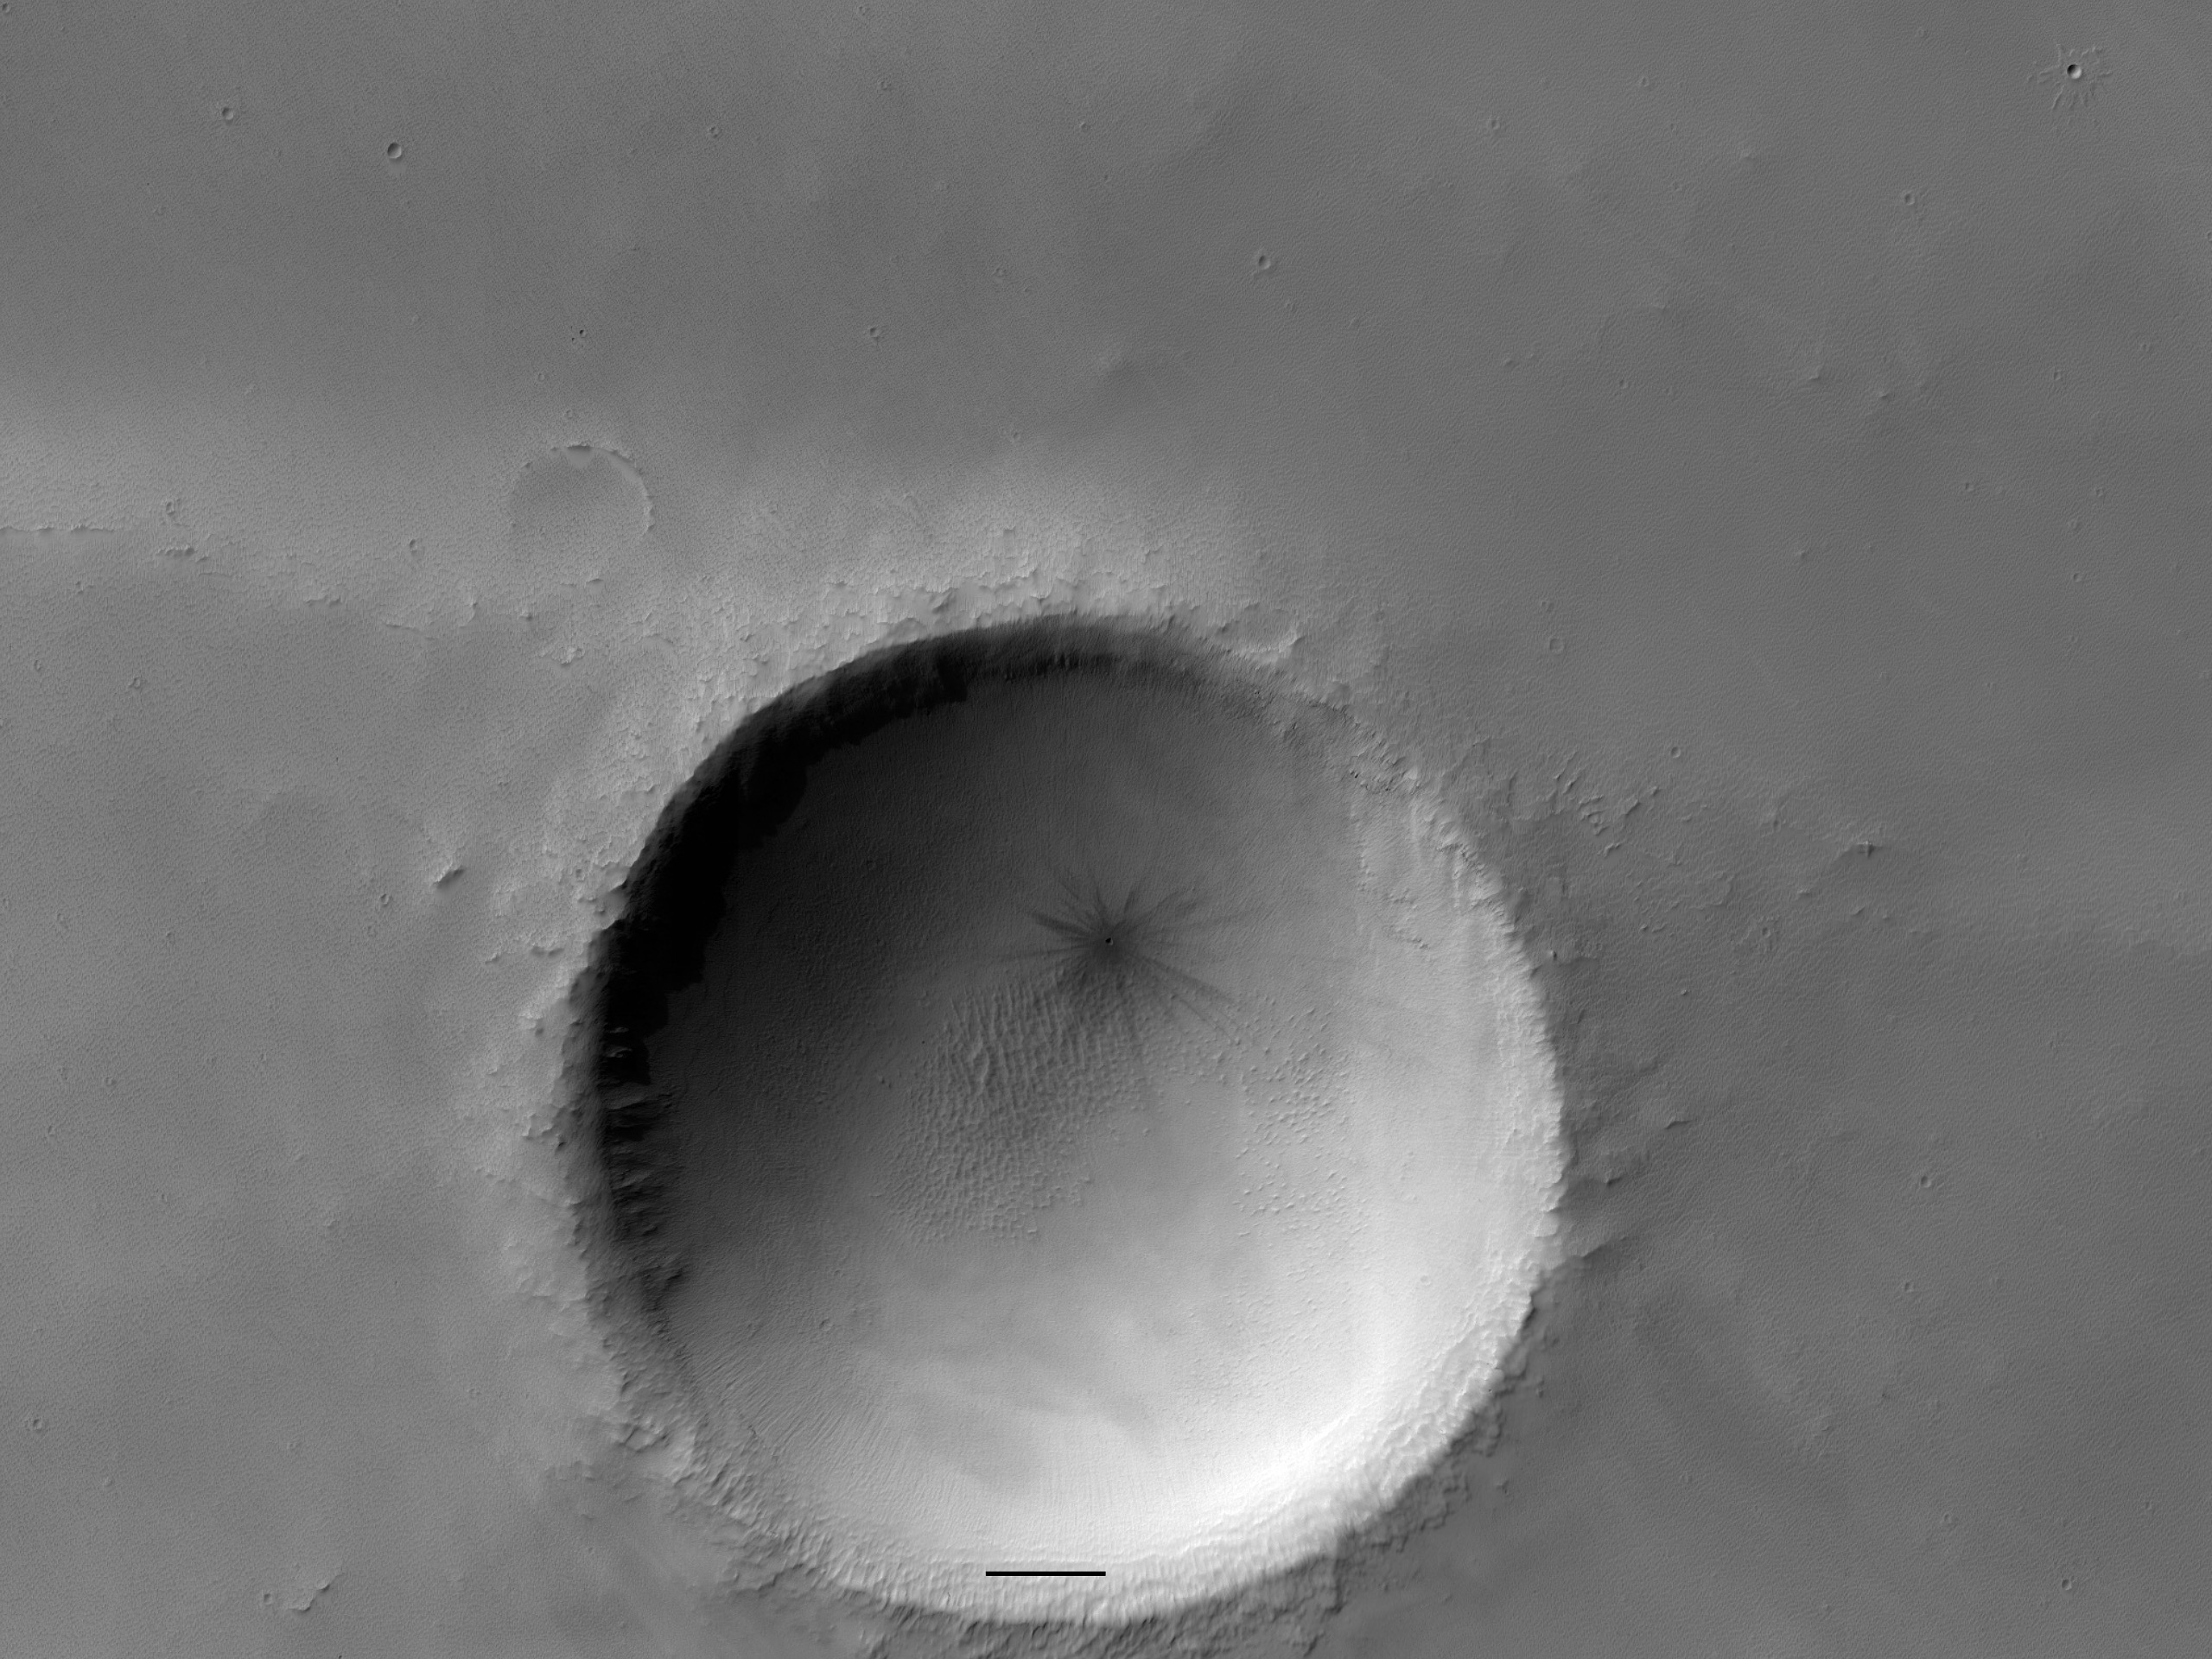 The Crater That Winked